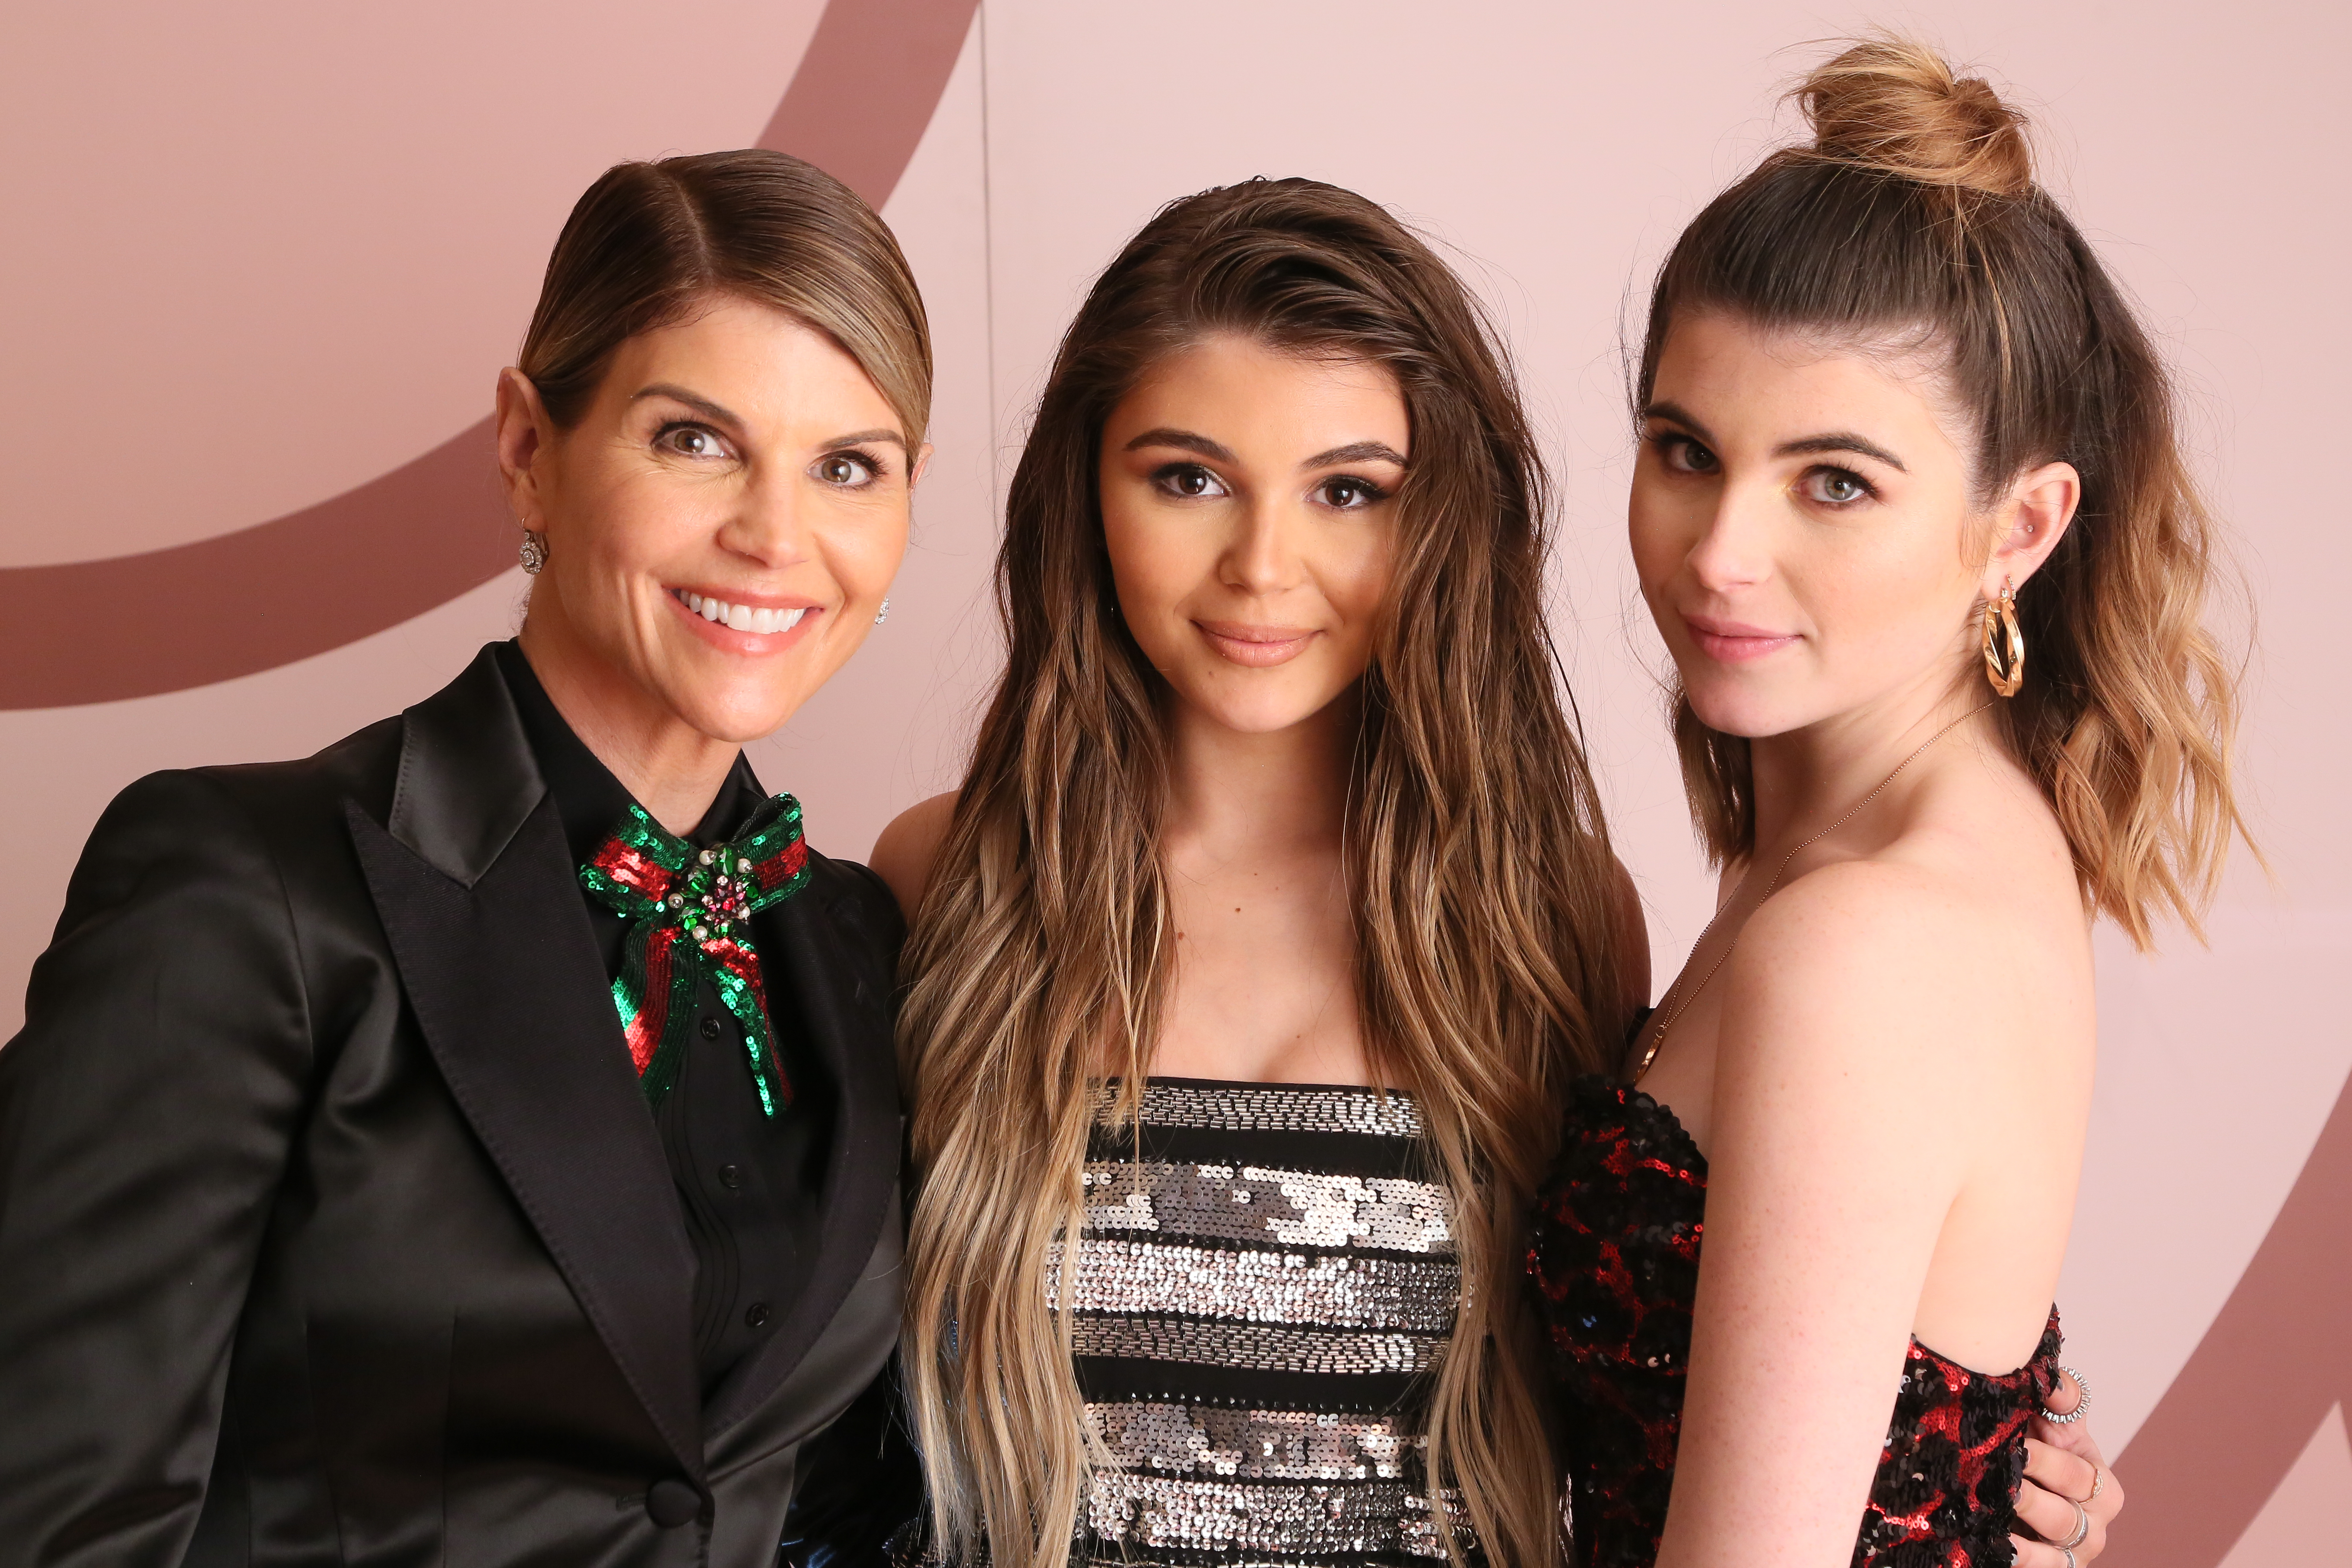 Lori Loughlin, Olivia Jade Giannulli and Isabella Rose Giannulli